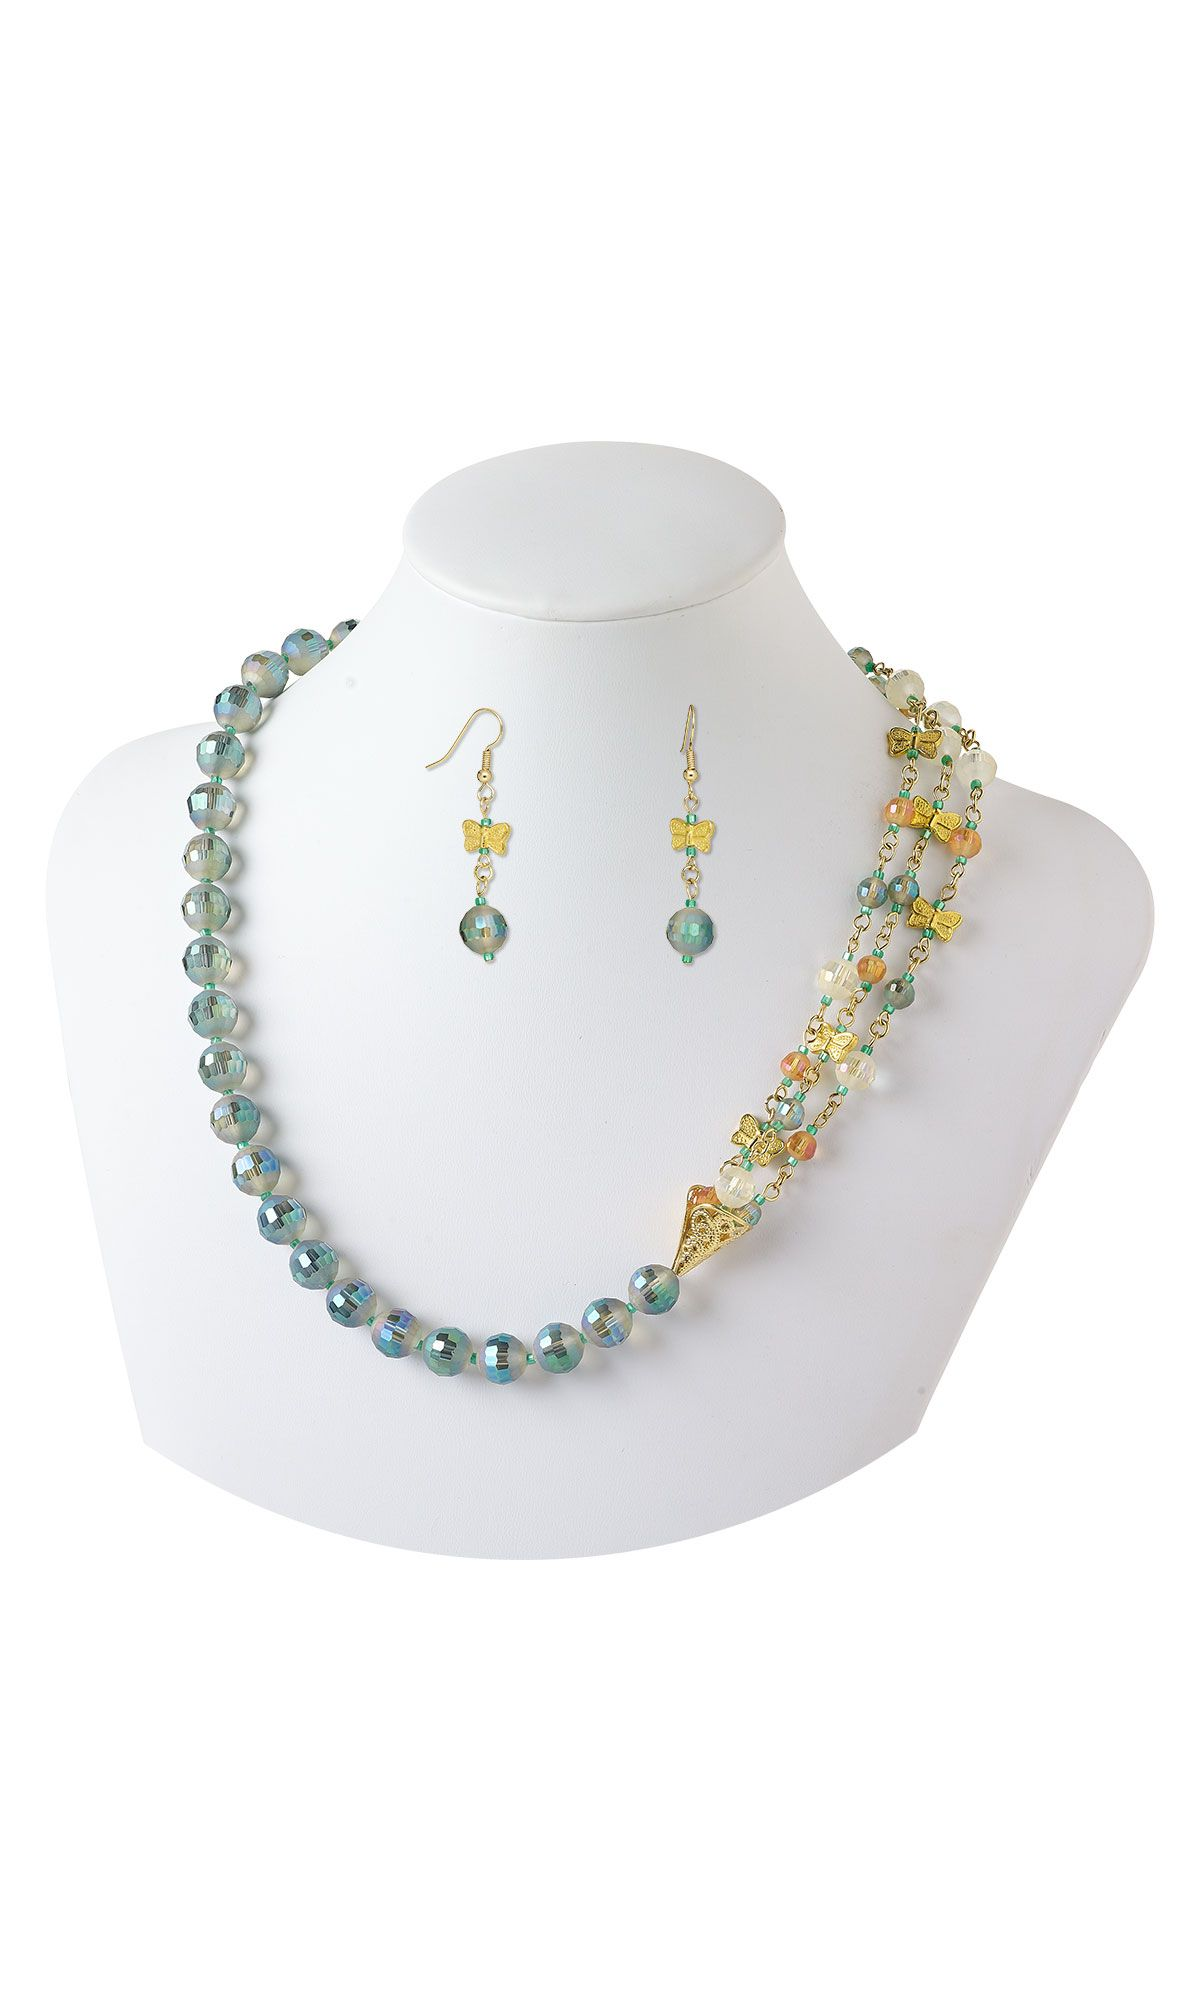 Jewelry Design  Triple Strand Necklace With Celestial Crystal Beads, Gold Finished